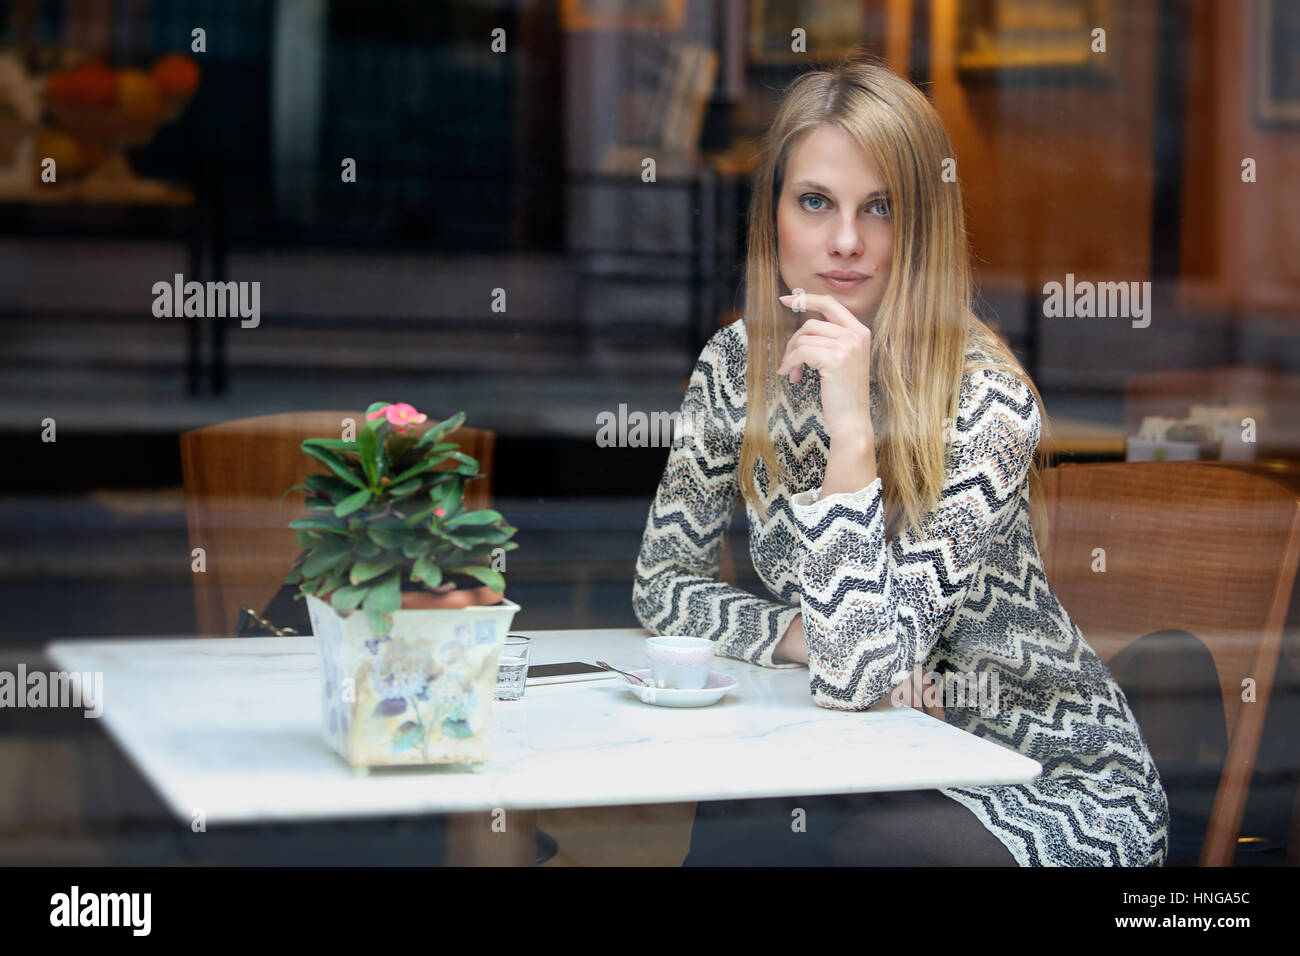 Beautiful woman inside a cafe. City lifestyle - Stock Image